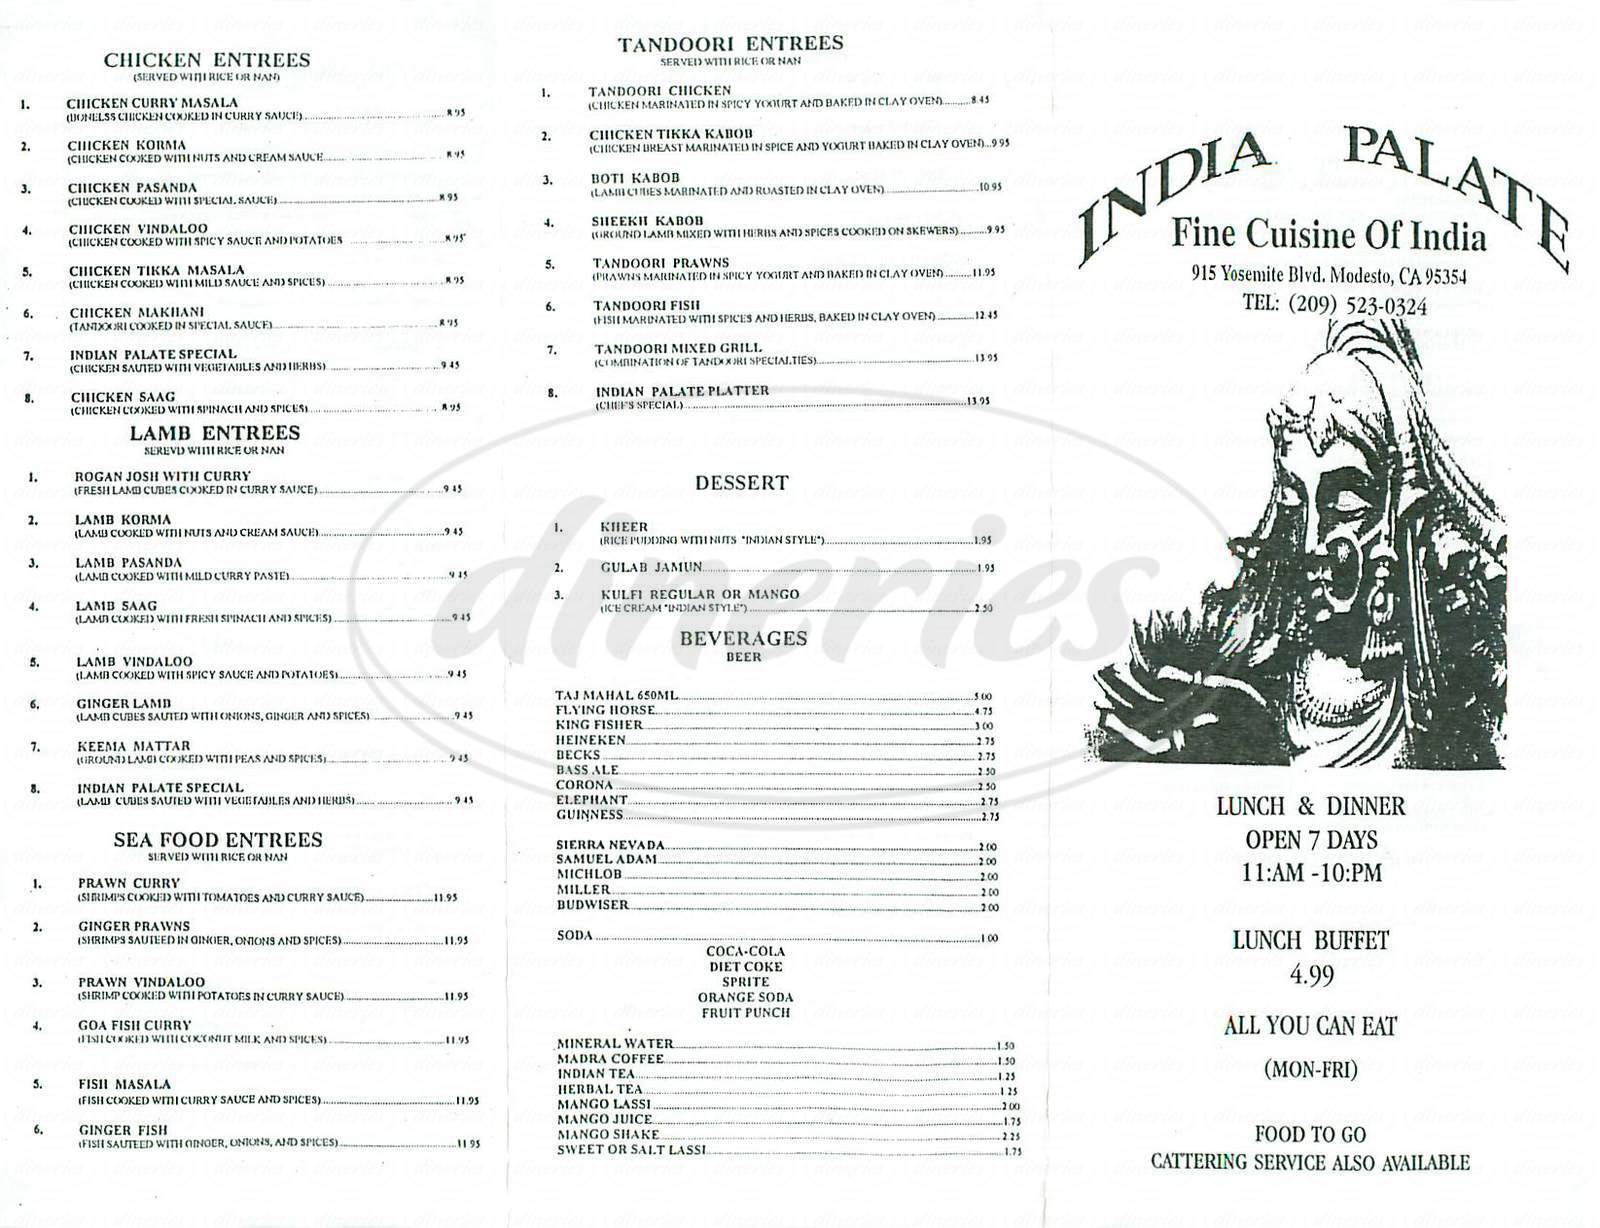 menu for India Palate Fine Cuisine of India